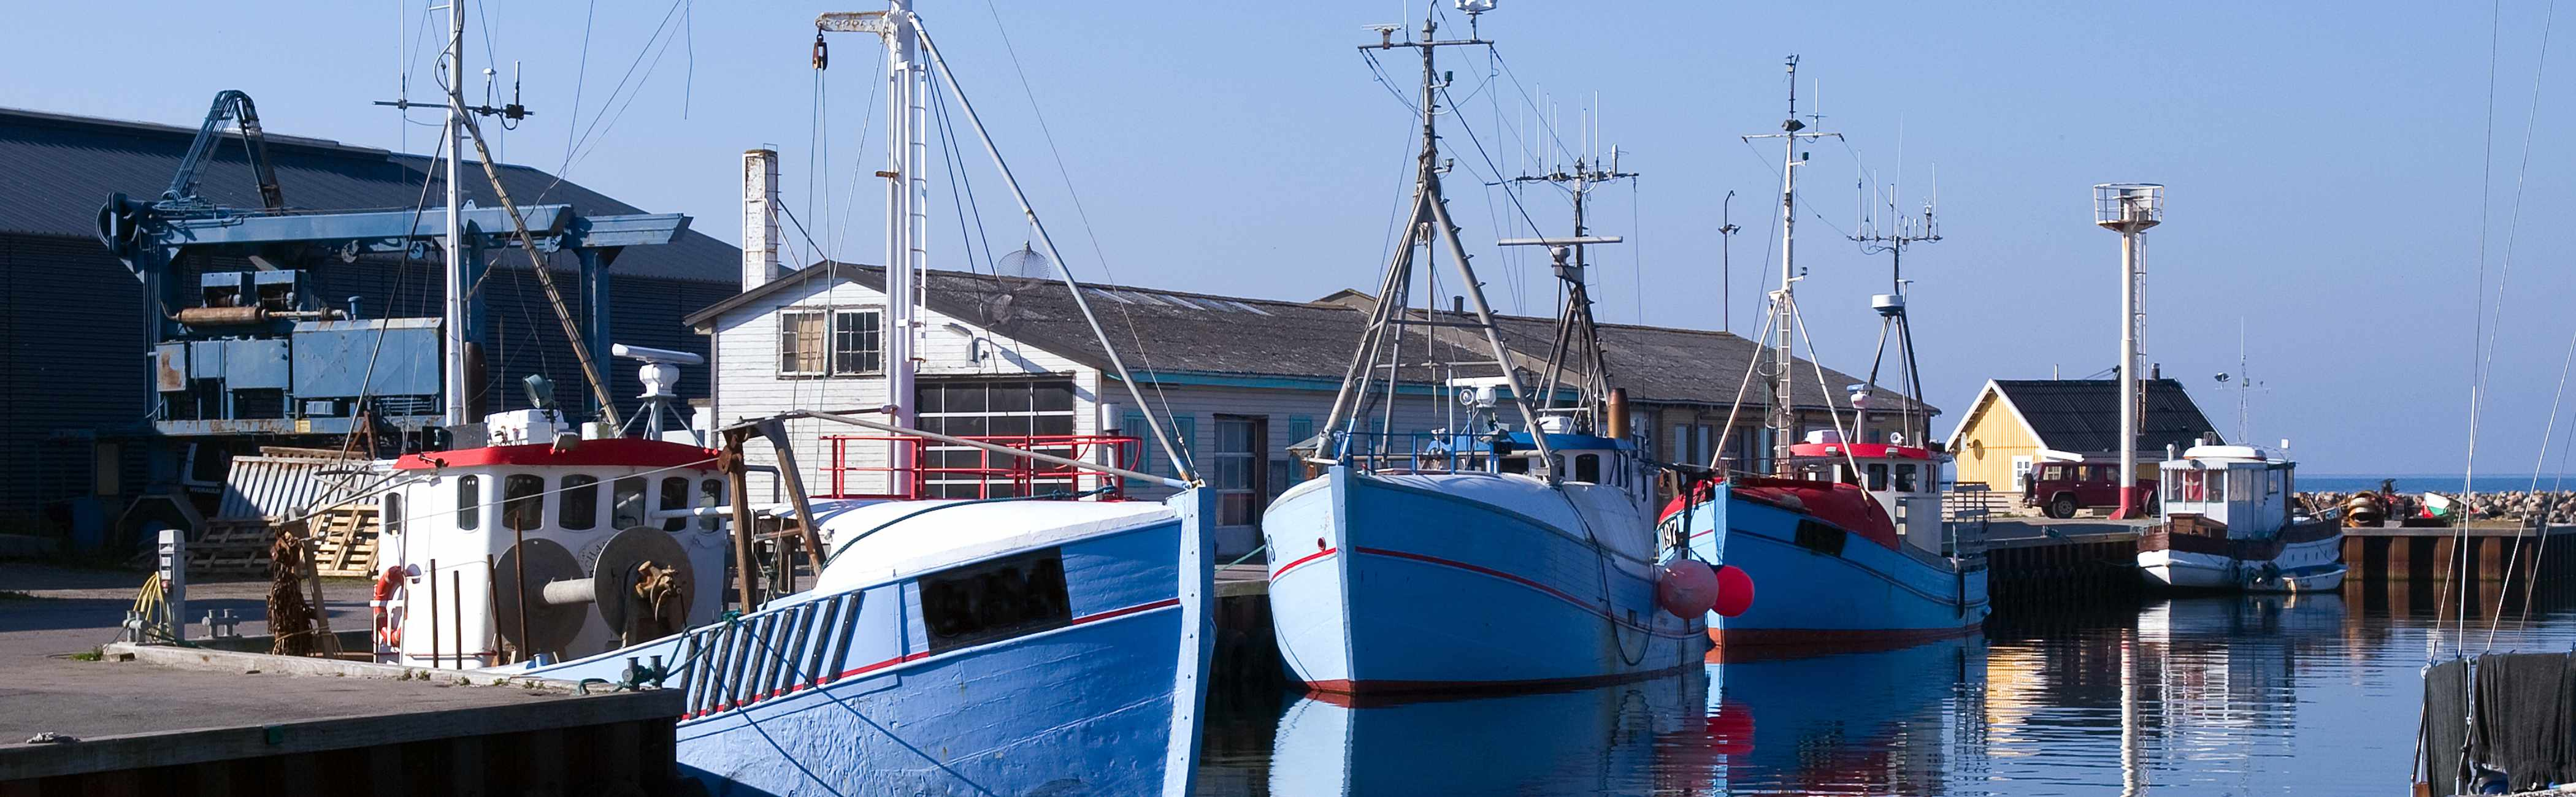 Day fishing boats moored in the harbour.